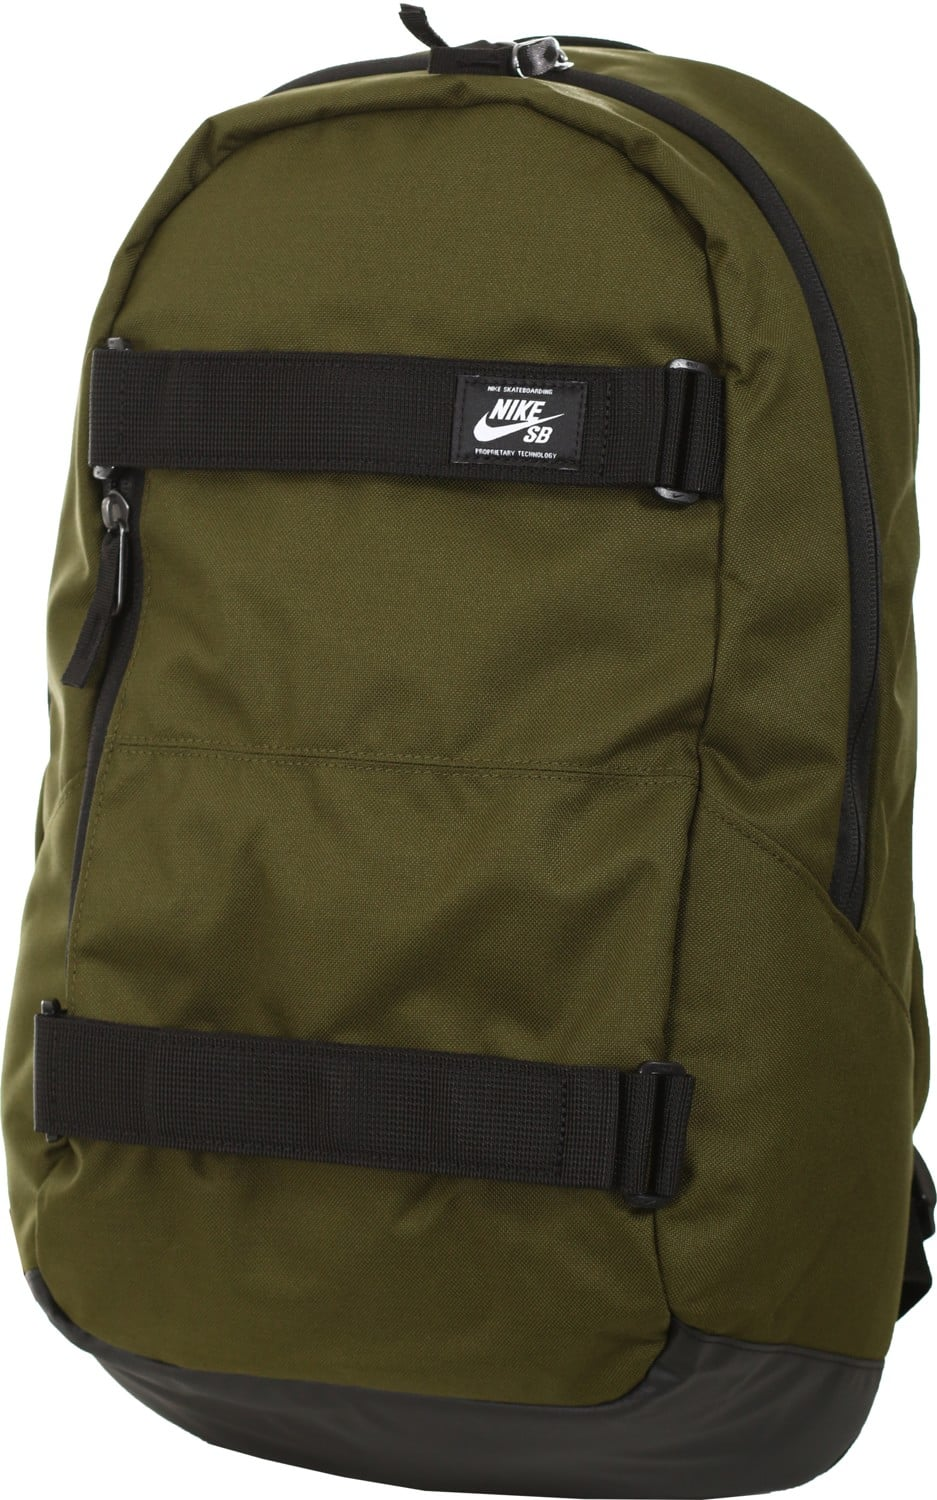 nike sb backpack green